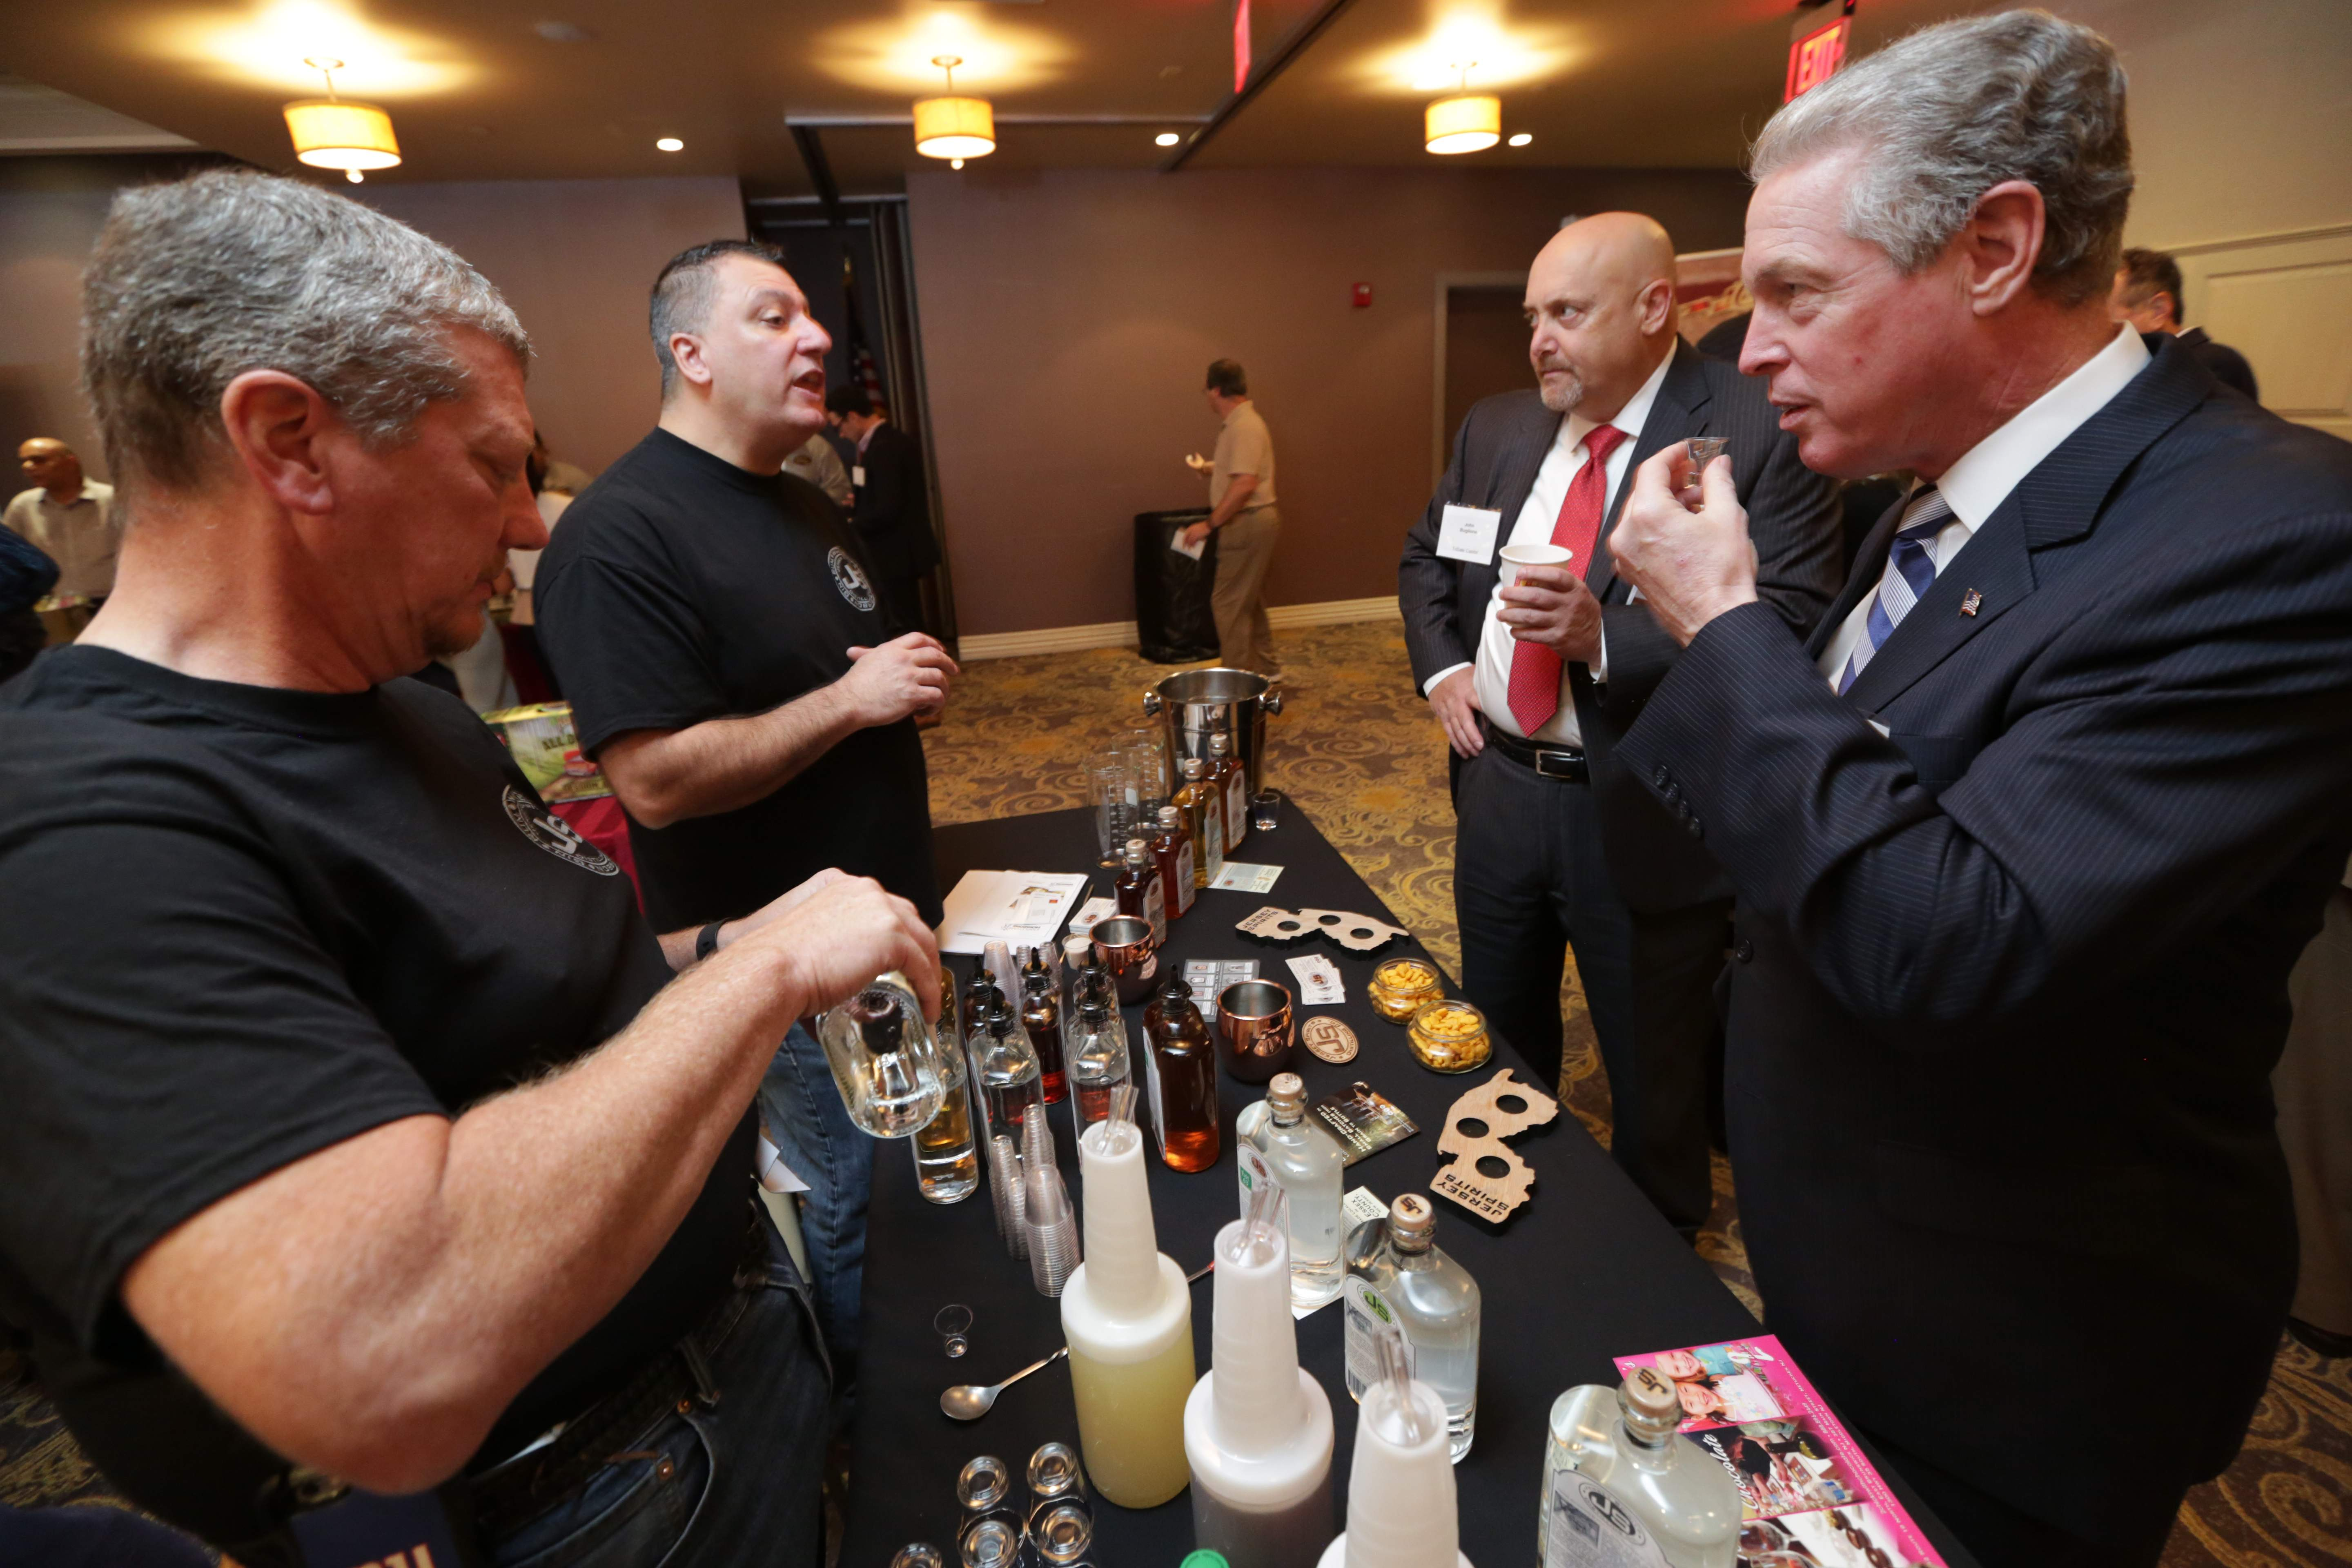 Attendees try samples at the Jersey Spirits booth. Jersey Spirits Distilling Co. is an award-winning craft distillery located in Fairfield. They hand-craft all of their spirits, including vodka, whiskey, rum, gin and bourbon.